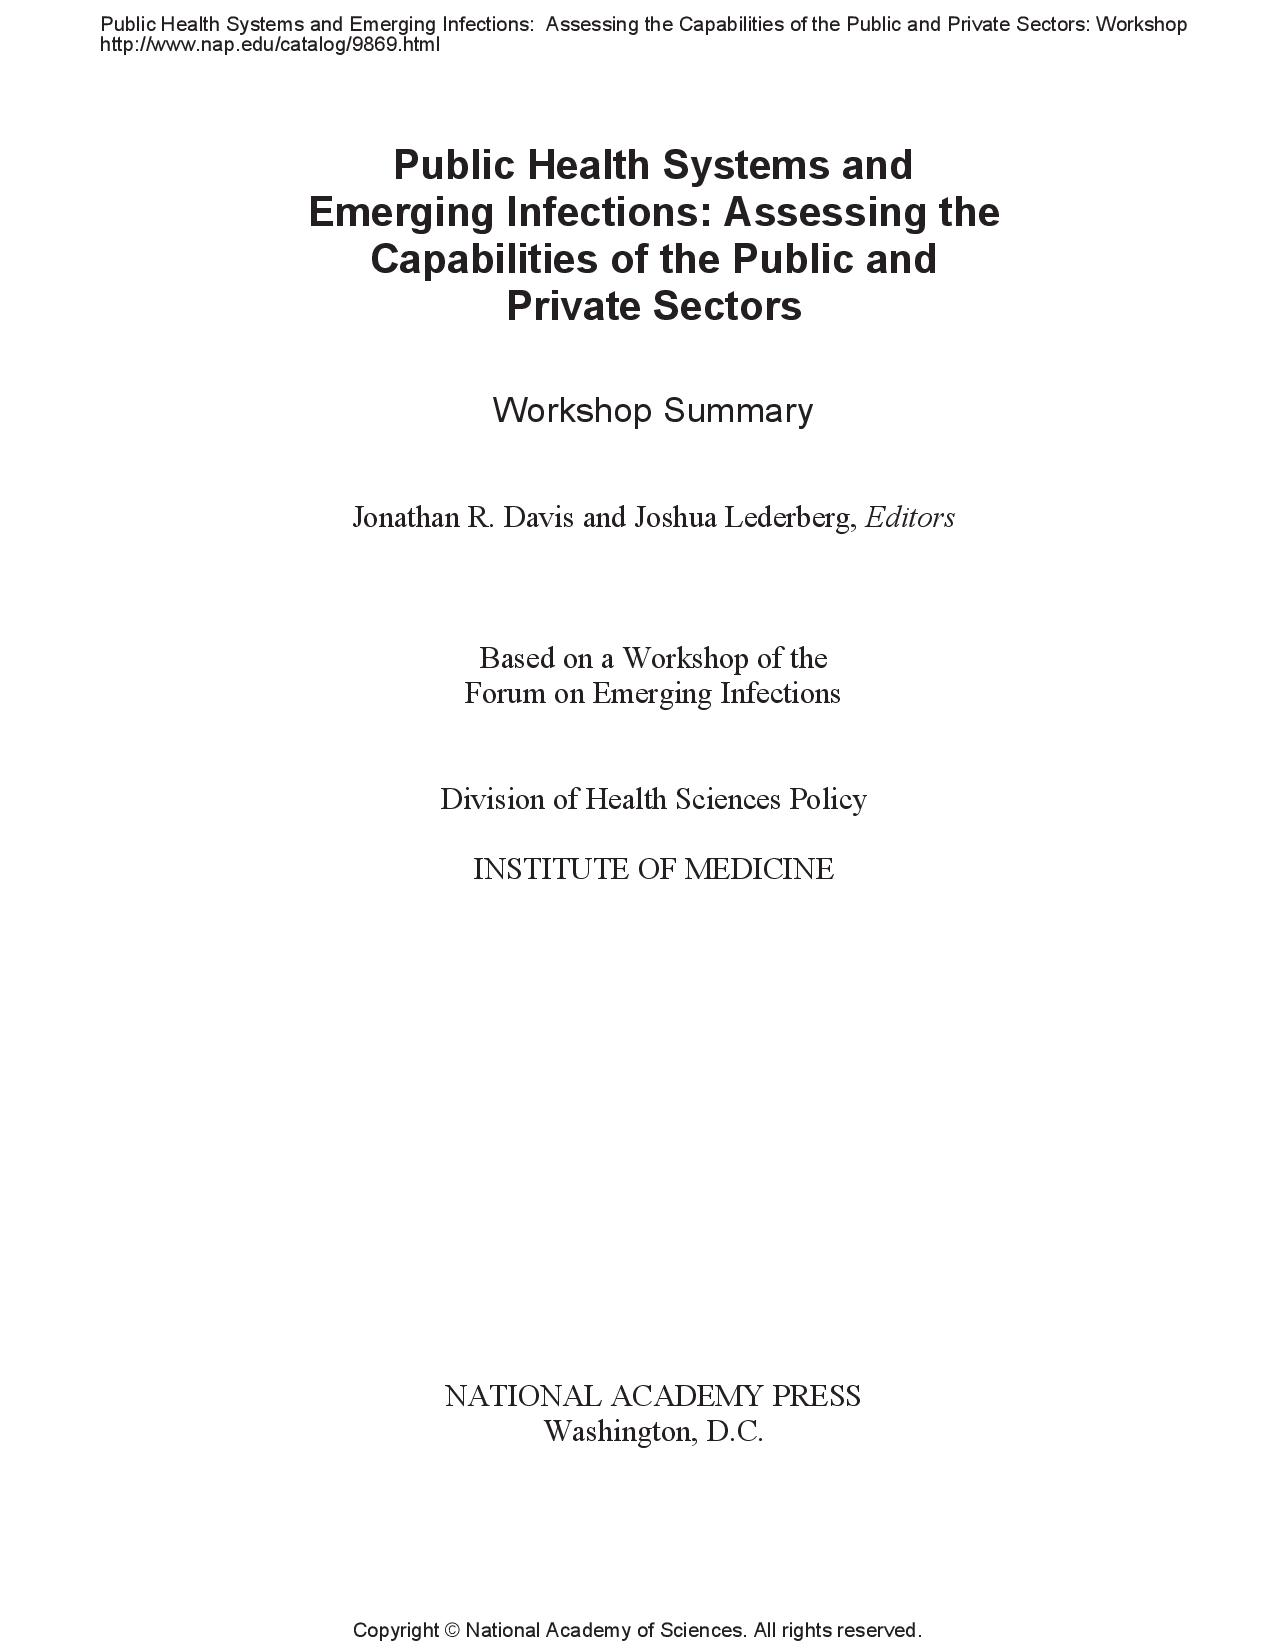 Public Health Systems and Emerging Infections: Assessing the Capabilities of the Public and Private Sectors